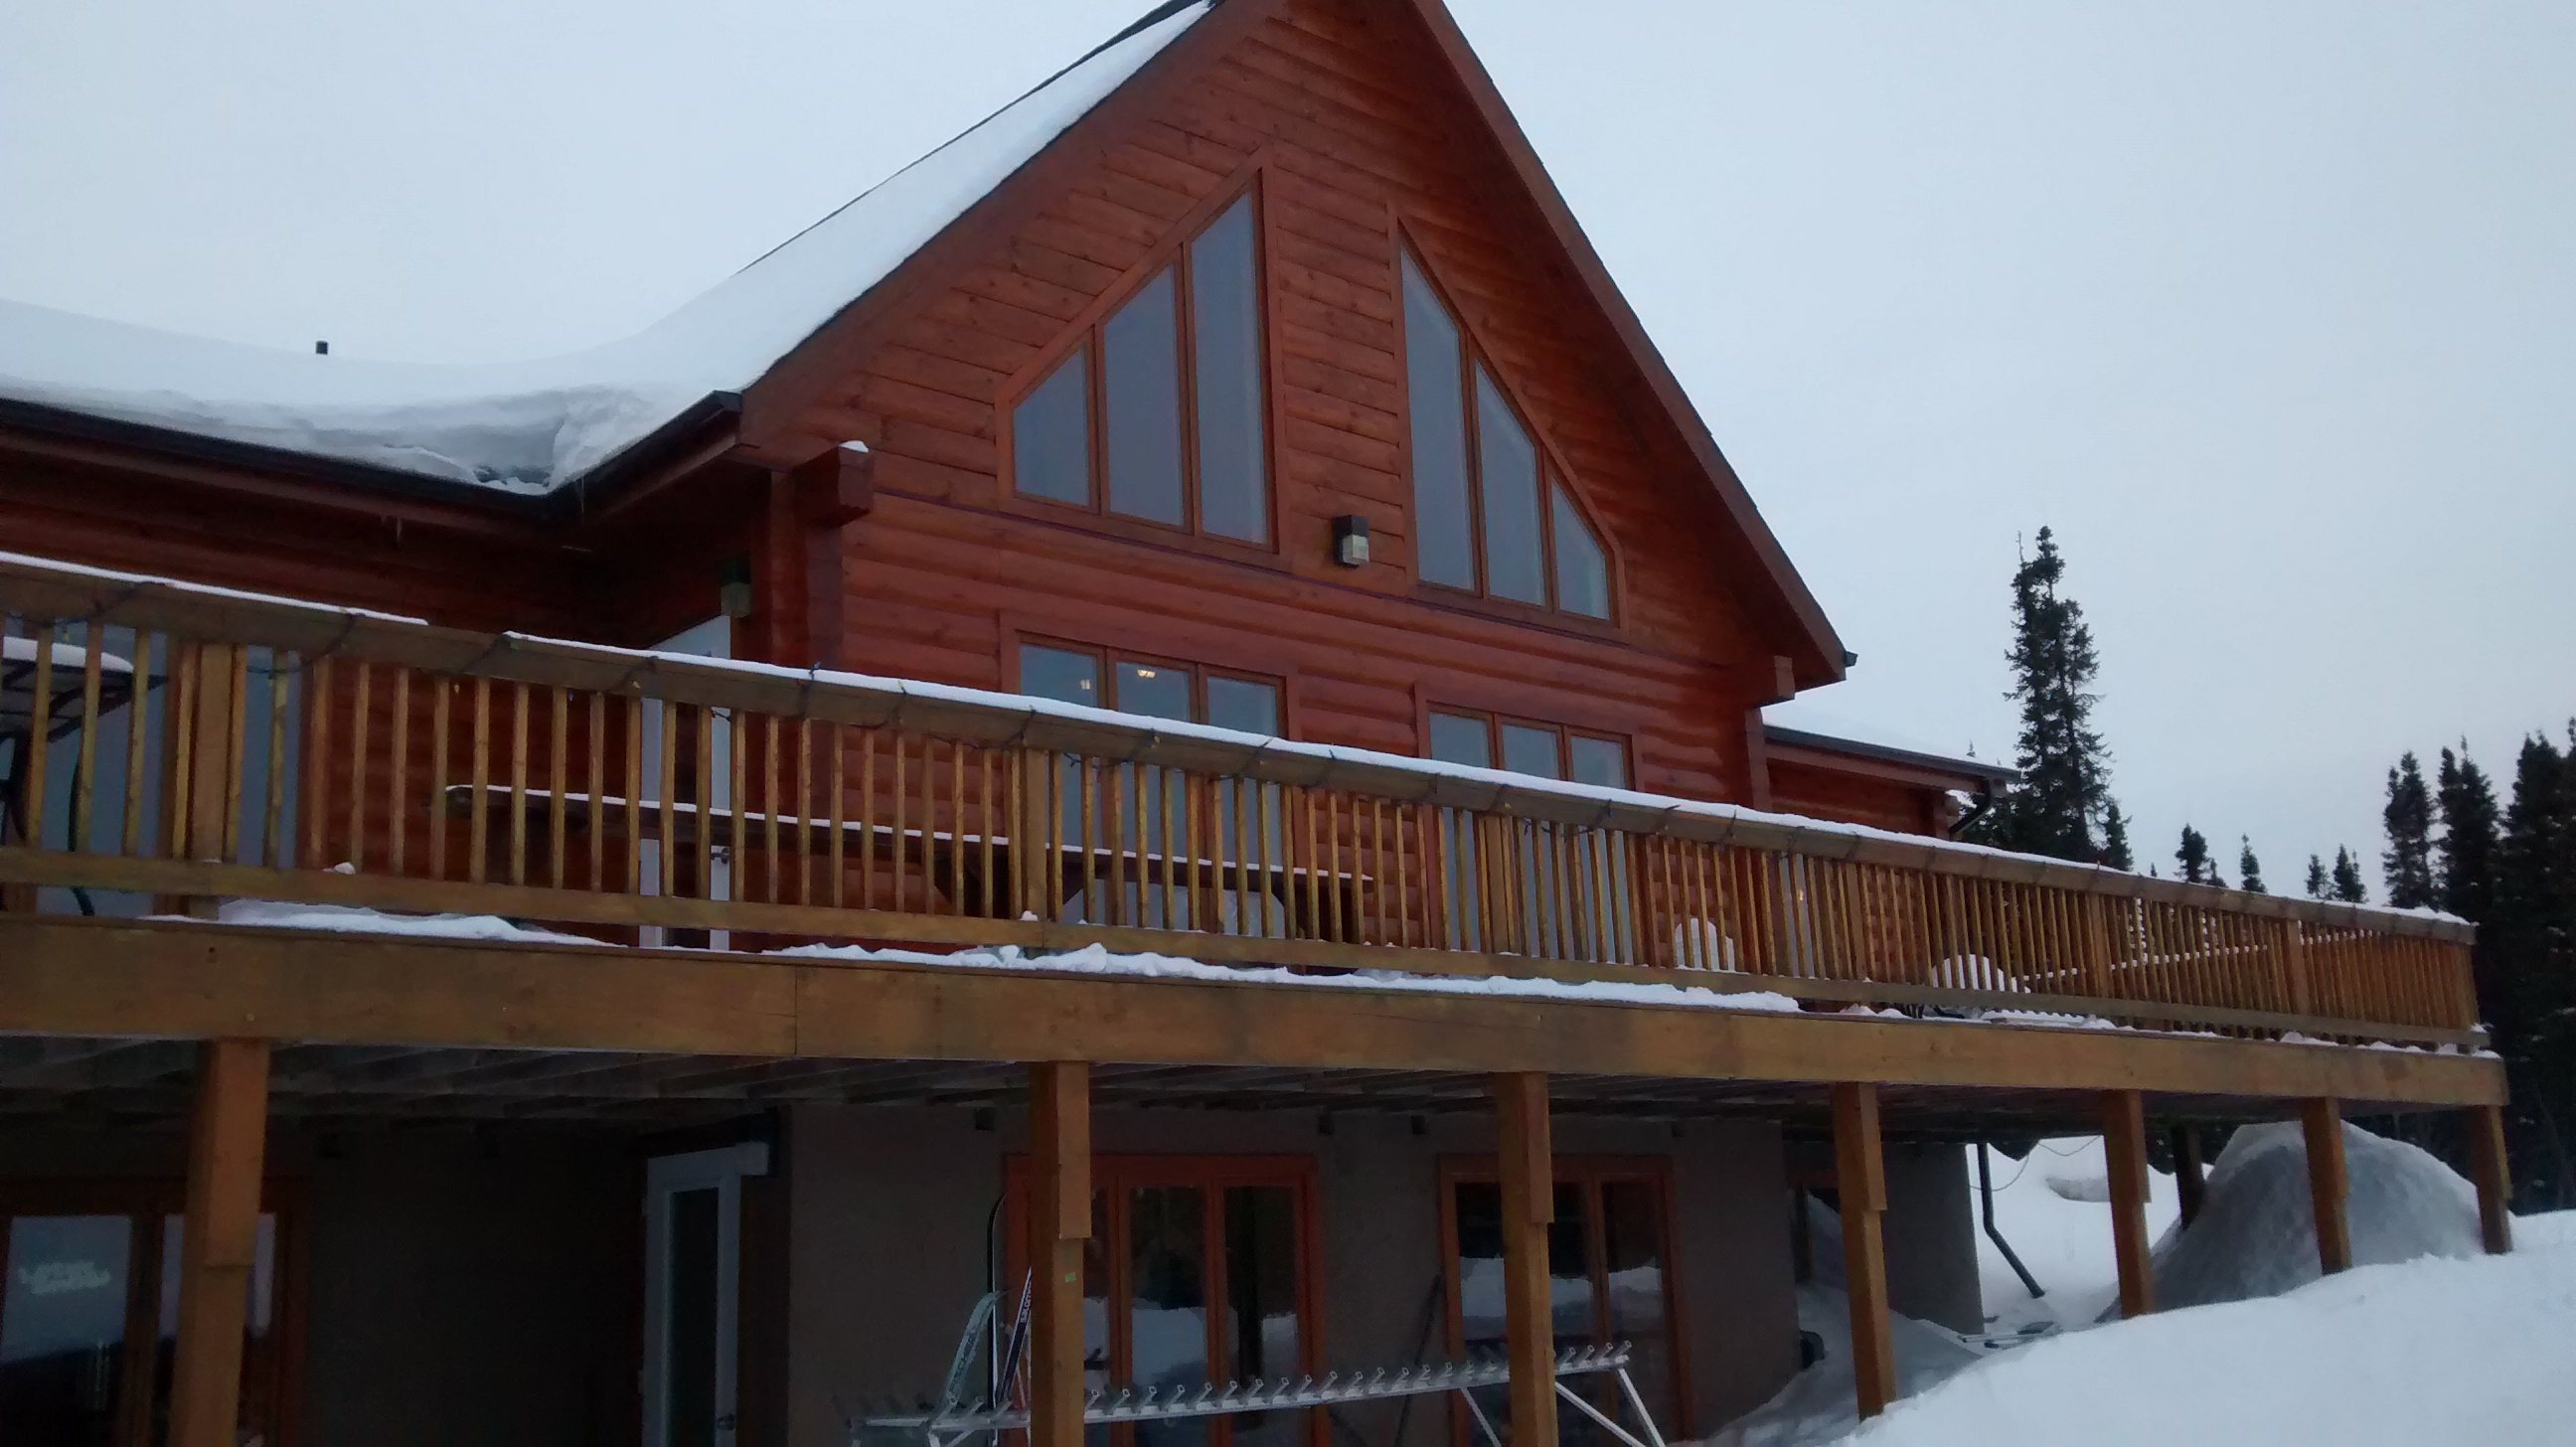 Goose Bay 2 ski lodge